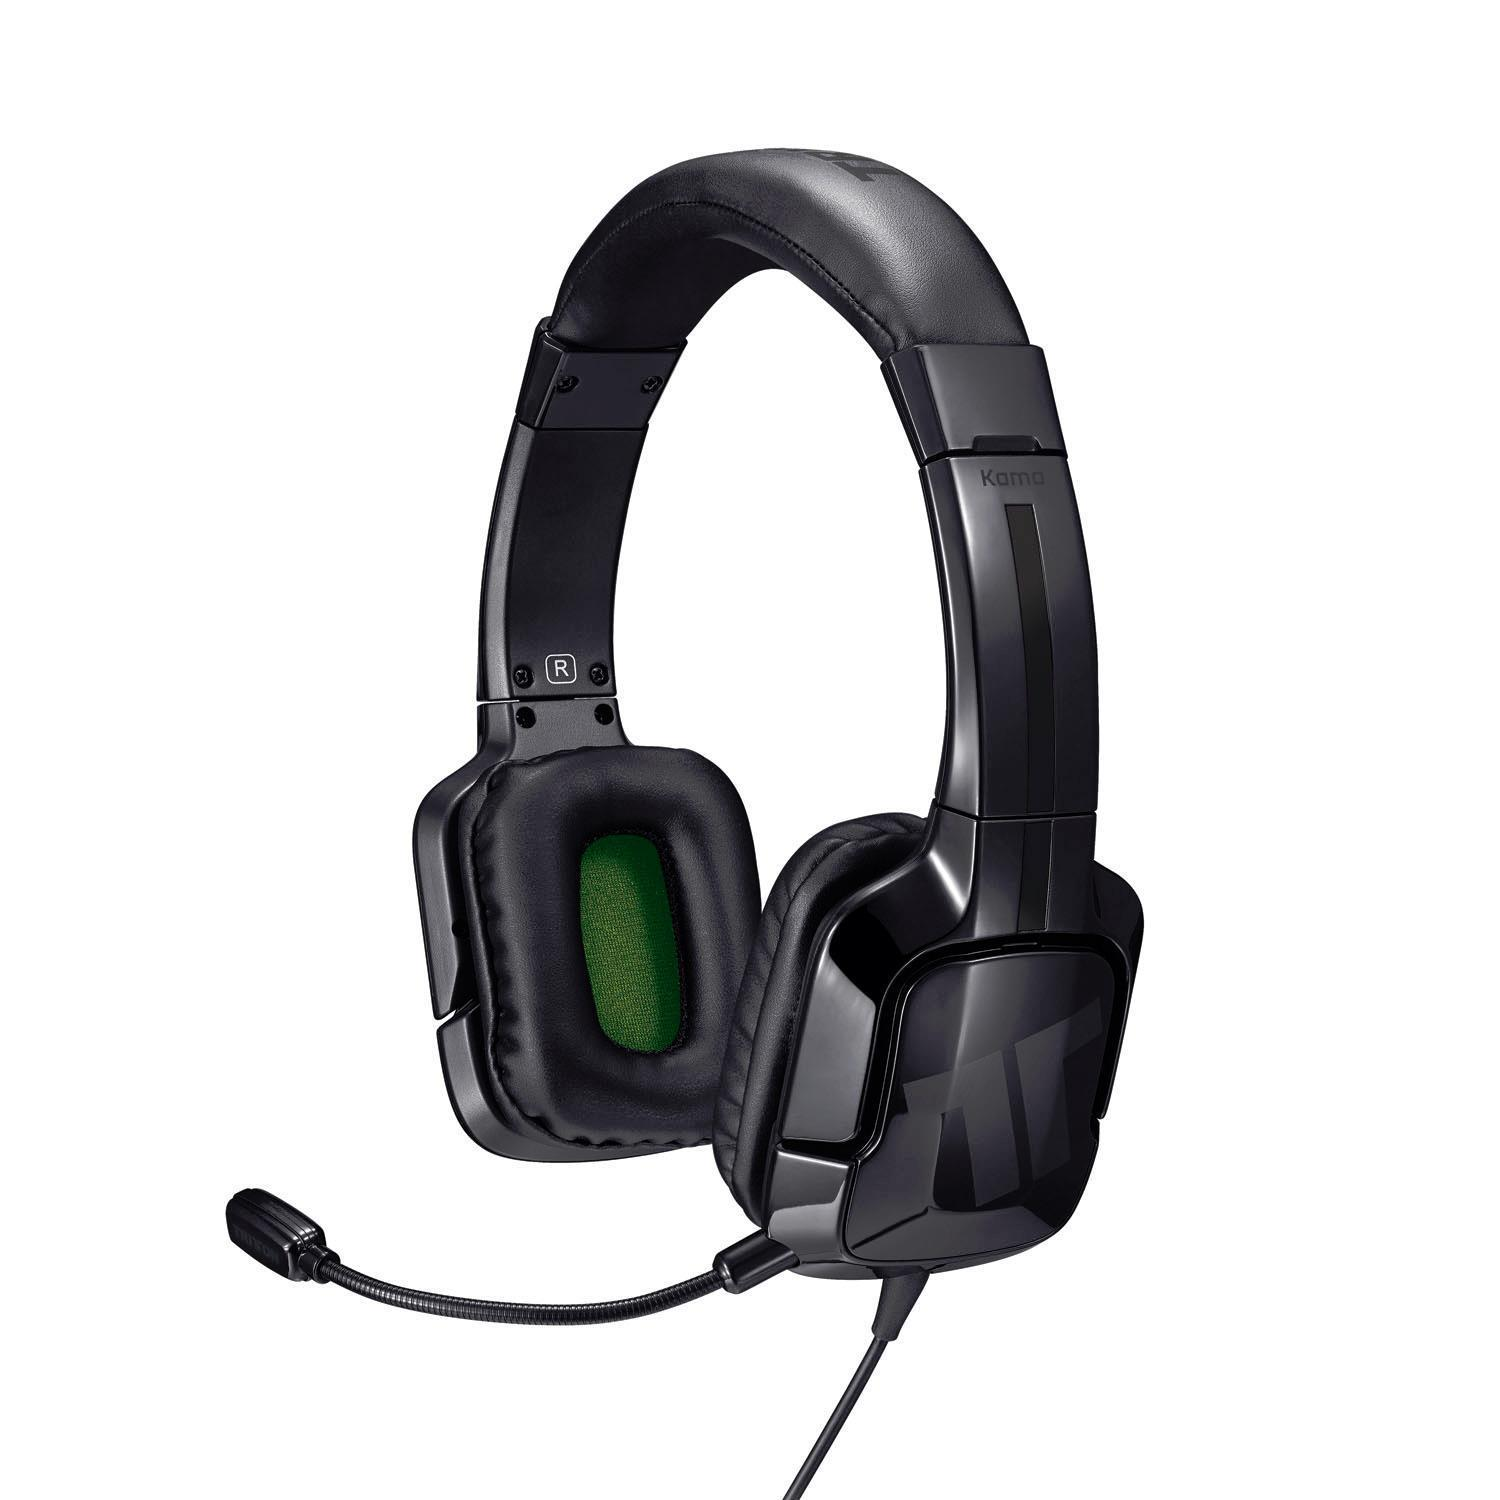 TRITTON Kama Stereo Headset for Xbox One (Black)